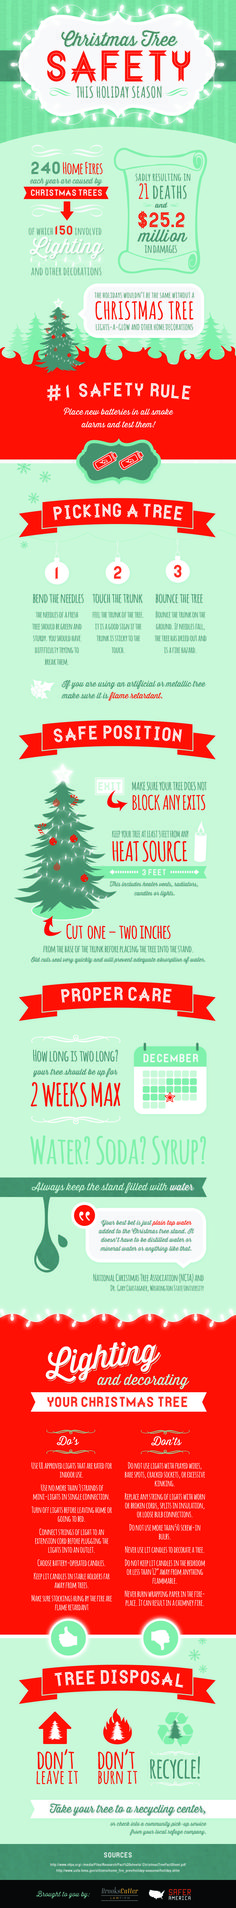 christmas tree safety tips infographic - Christmas Decorating Safety Tips